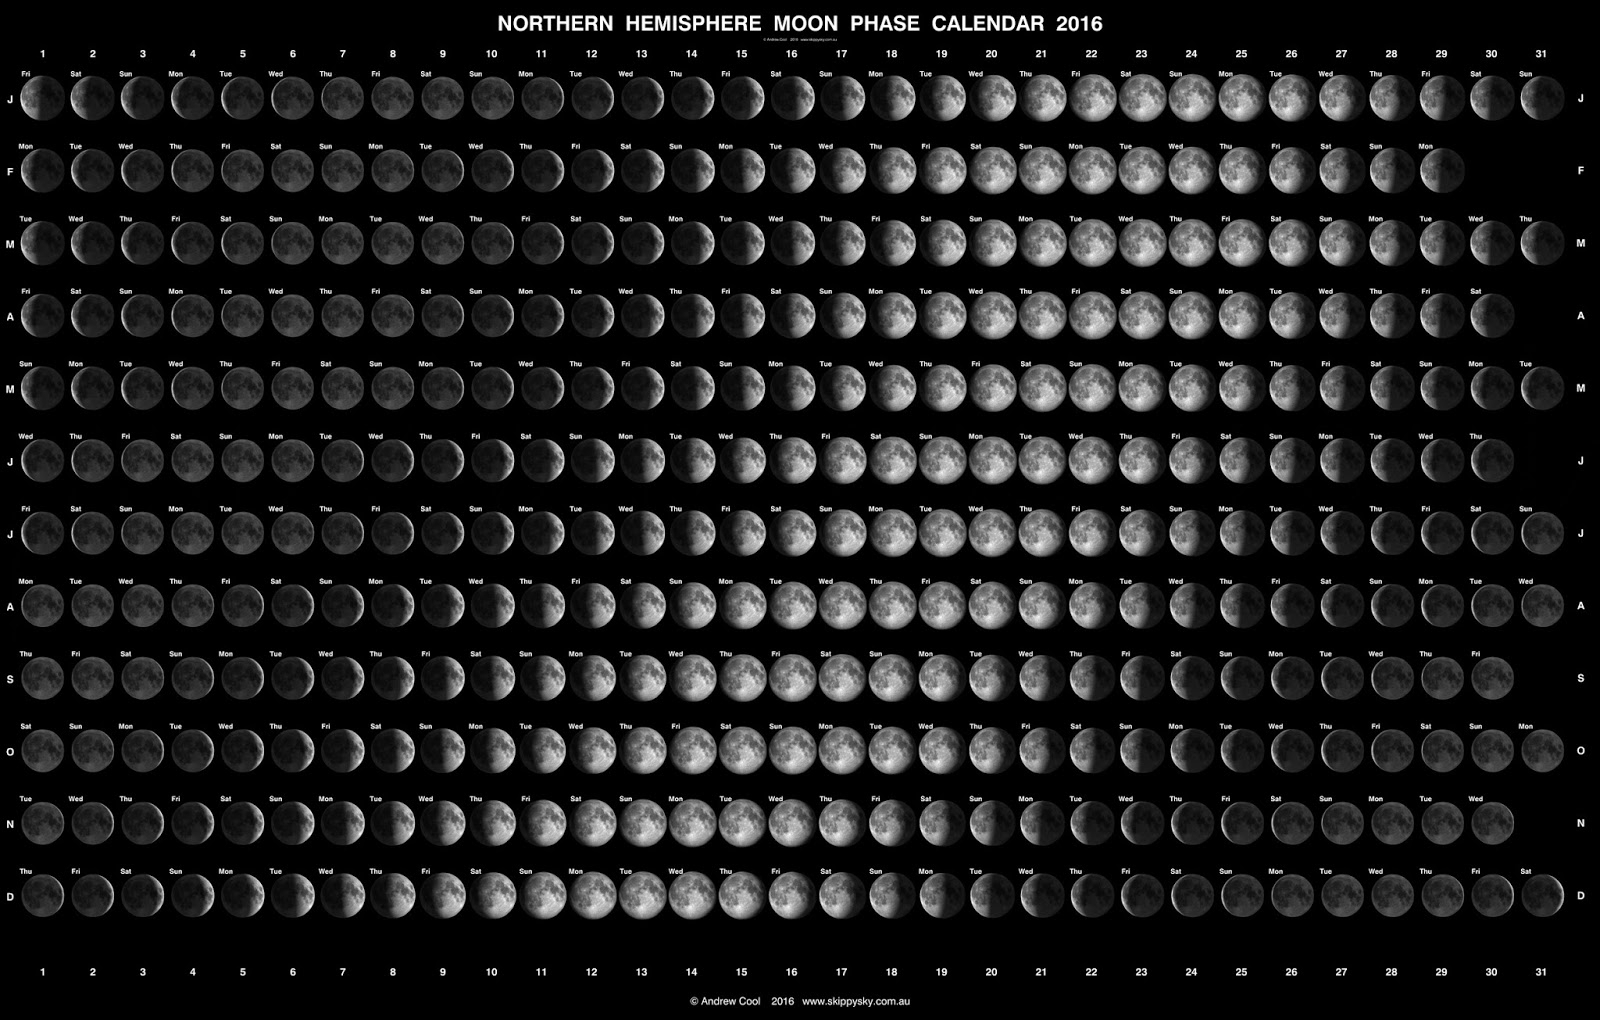 Loss Of The Night Citizen Science Project: Moon Phase Calendar For 2016 regarding Phases Of The Moon Calendar